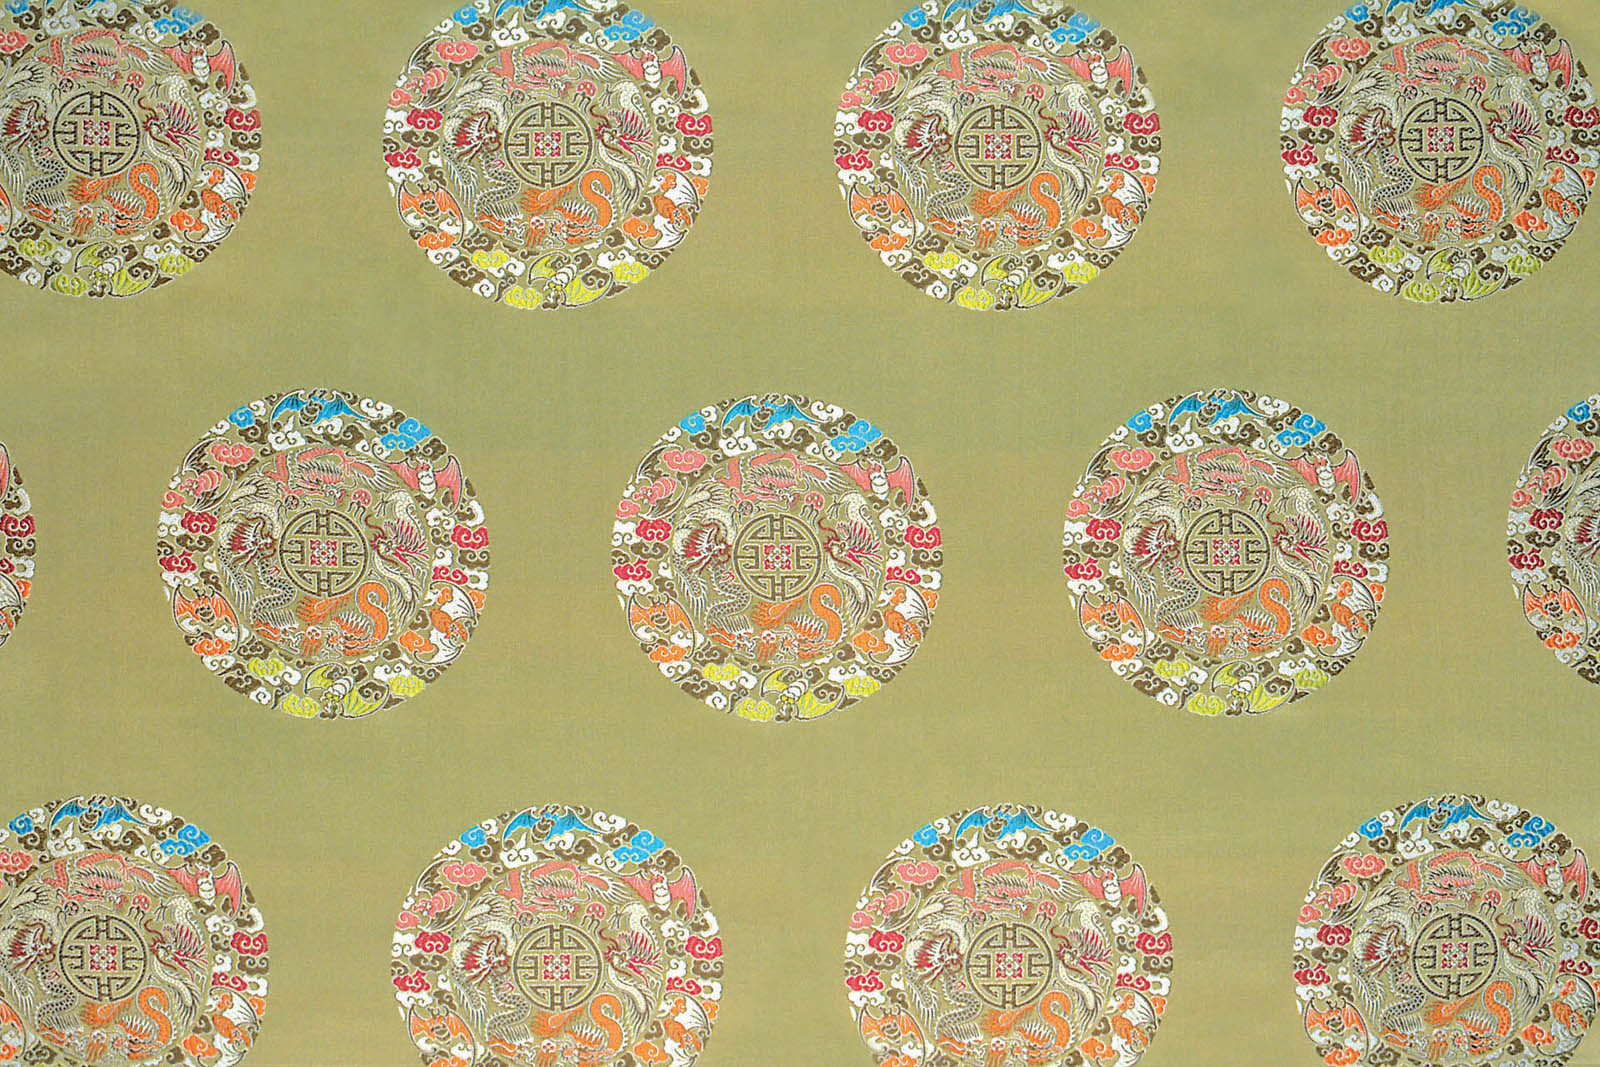 Gyrosigma background wallpaper pattern 18440